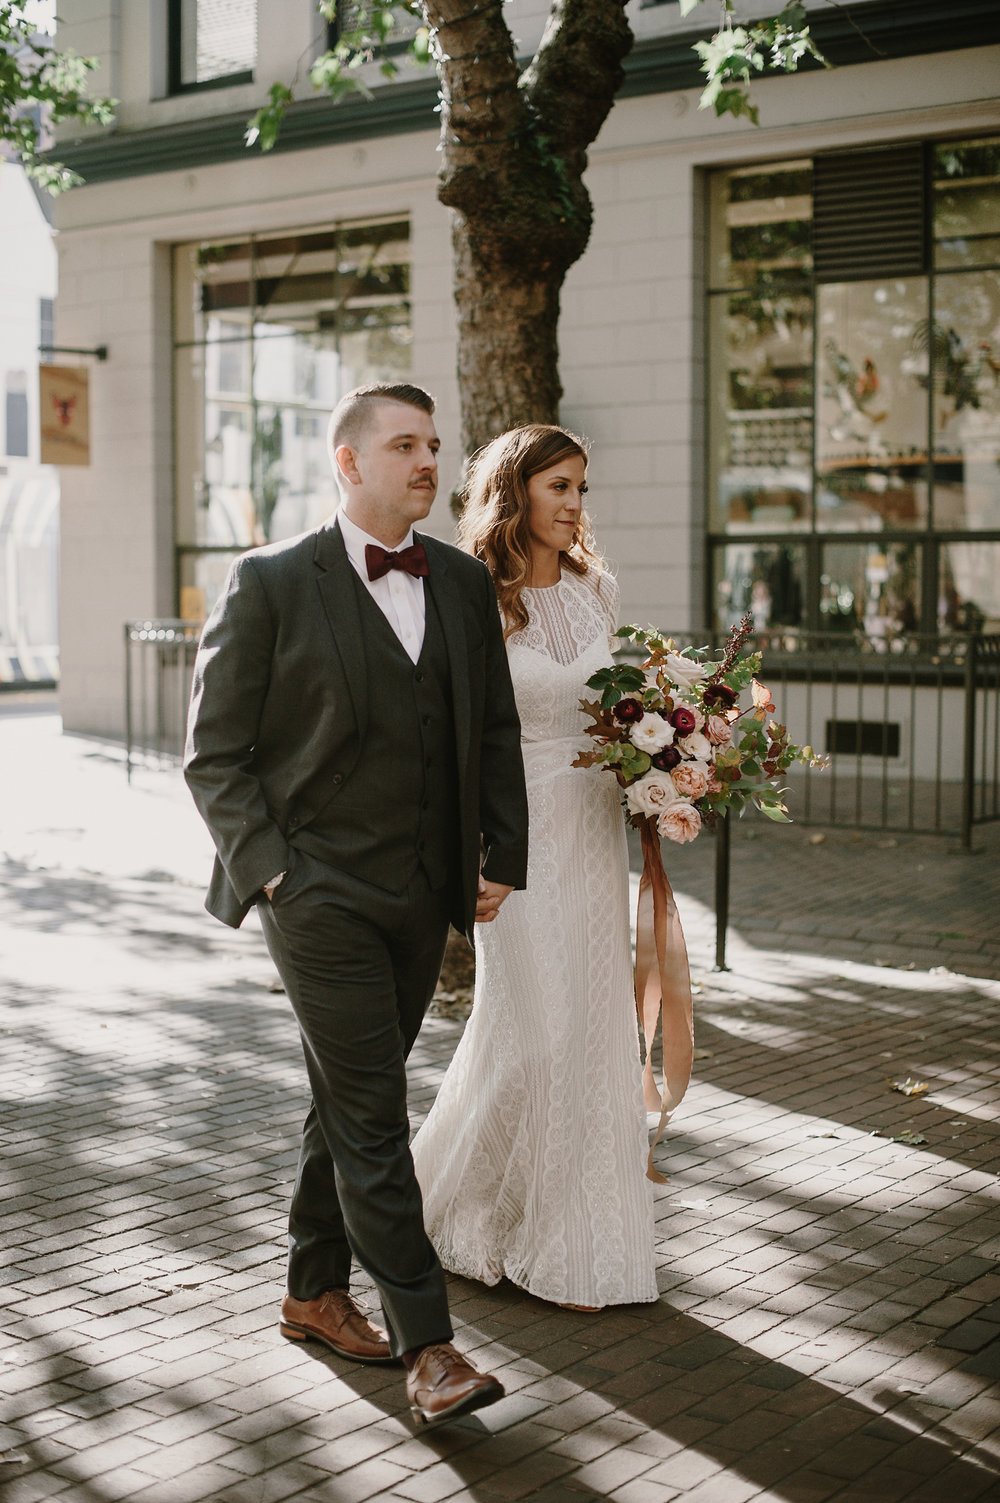 Downtown_Seattle_Wedding_Foundry_Sinclair_Moore022.JPG